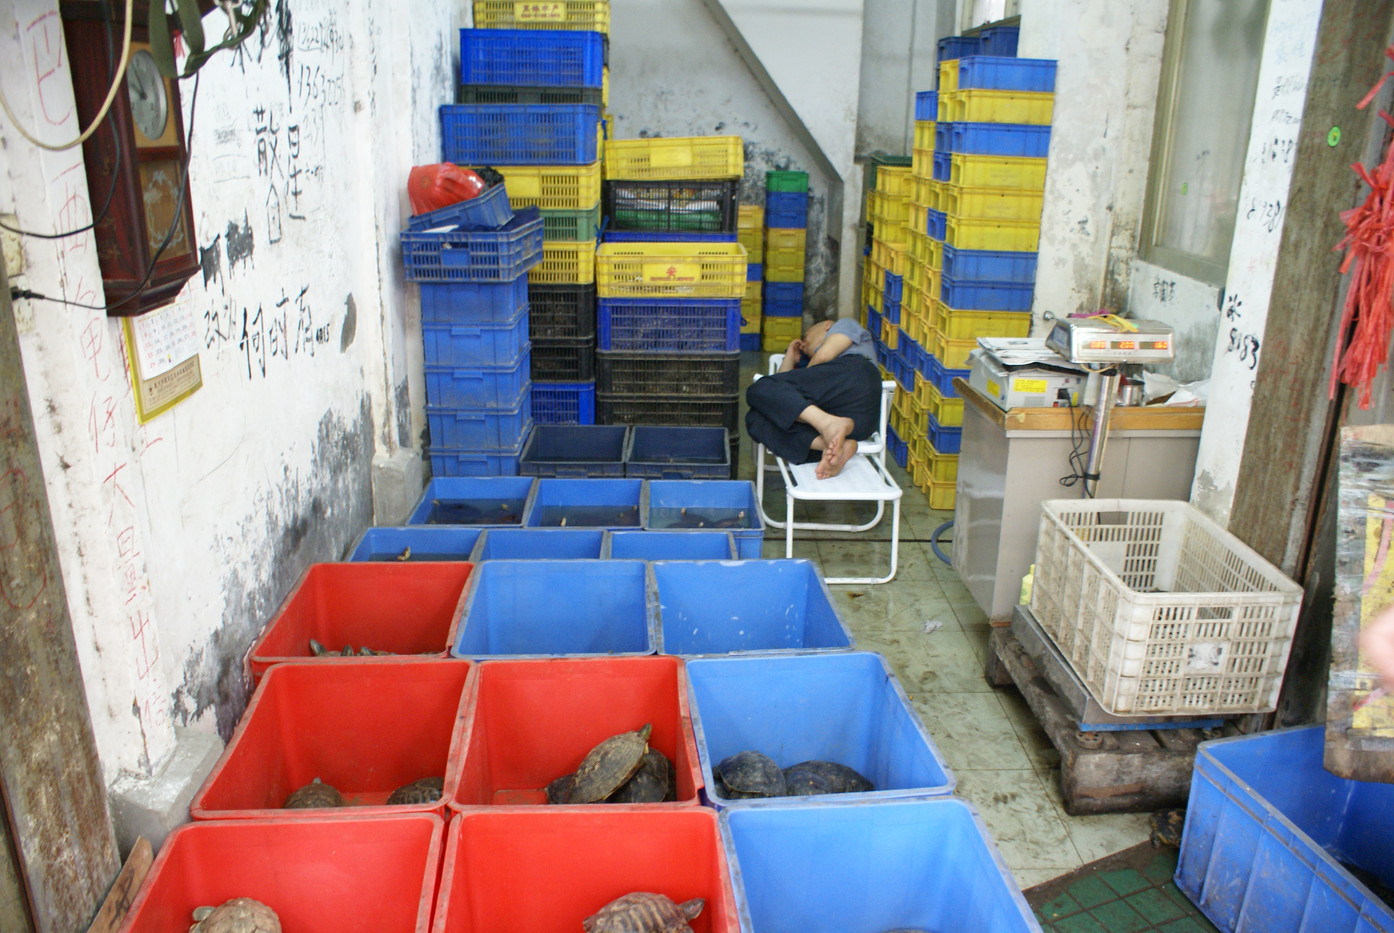 The Qingping Turtle (Food) Market